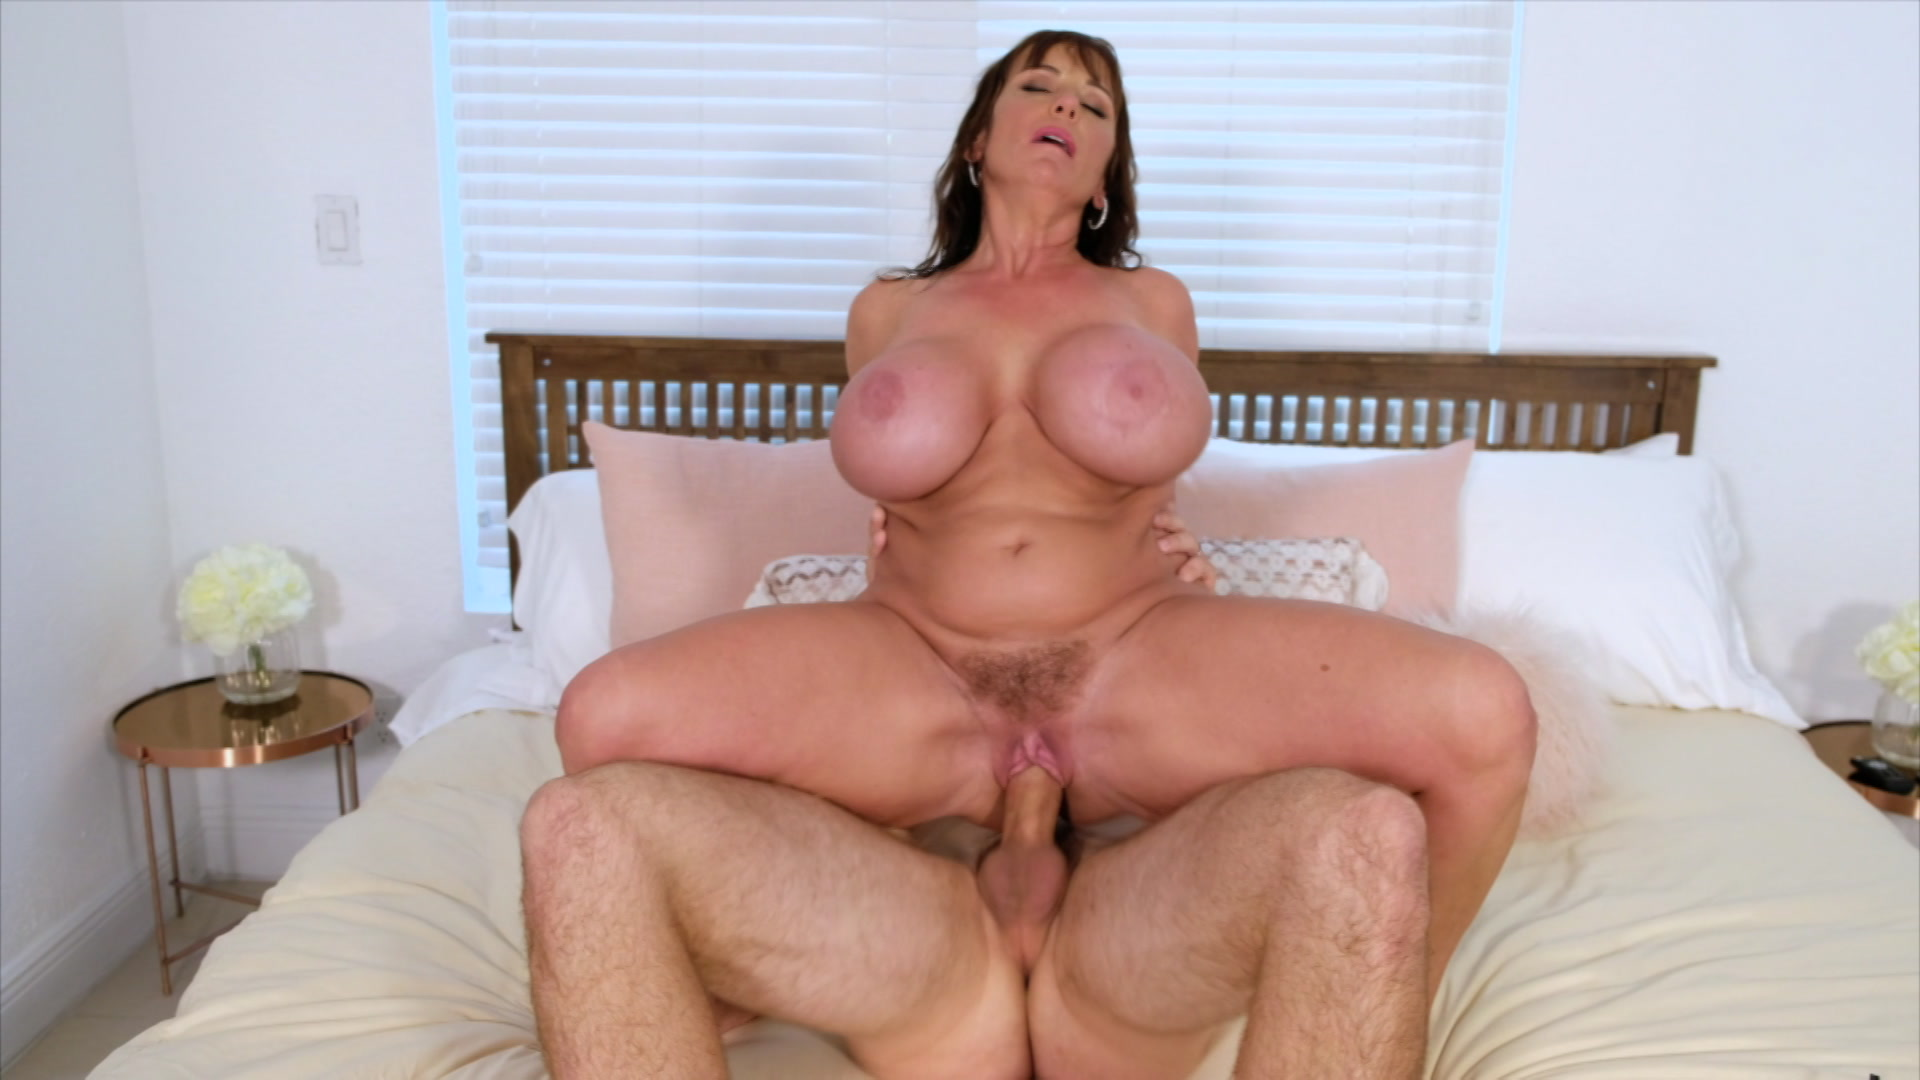 Ava addams round sexy big boobs housewife love tough bang picture